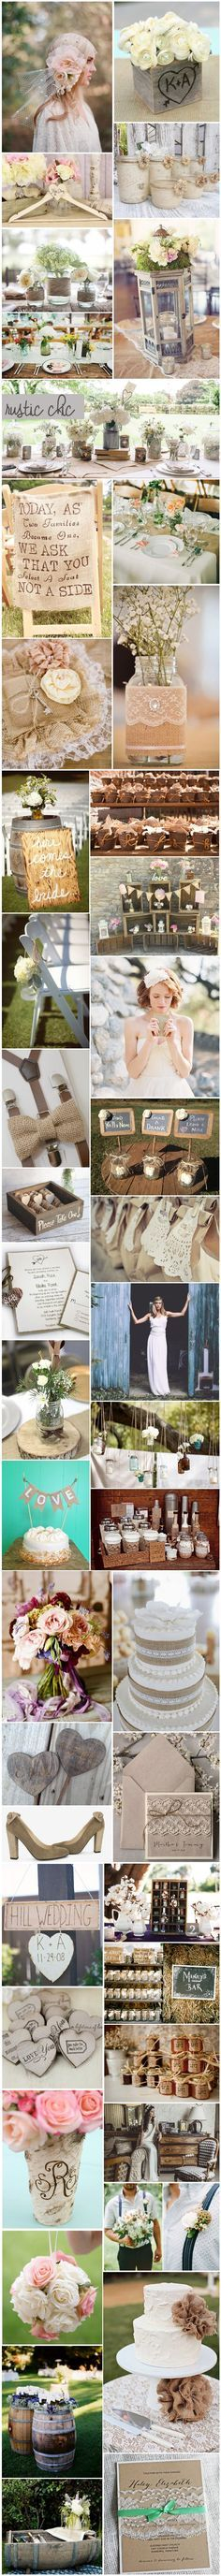 [Inspiration] Mariage rustique chic - gabrieldecor pin it - gabrieldecor.fr - décor mariage gabrieldecor - décoration florale gabrieldecor - pinterest - paris - Facebook - gabrieldecor Nathalie - #gabrieldecor